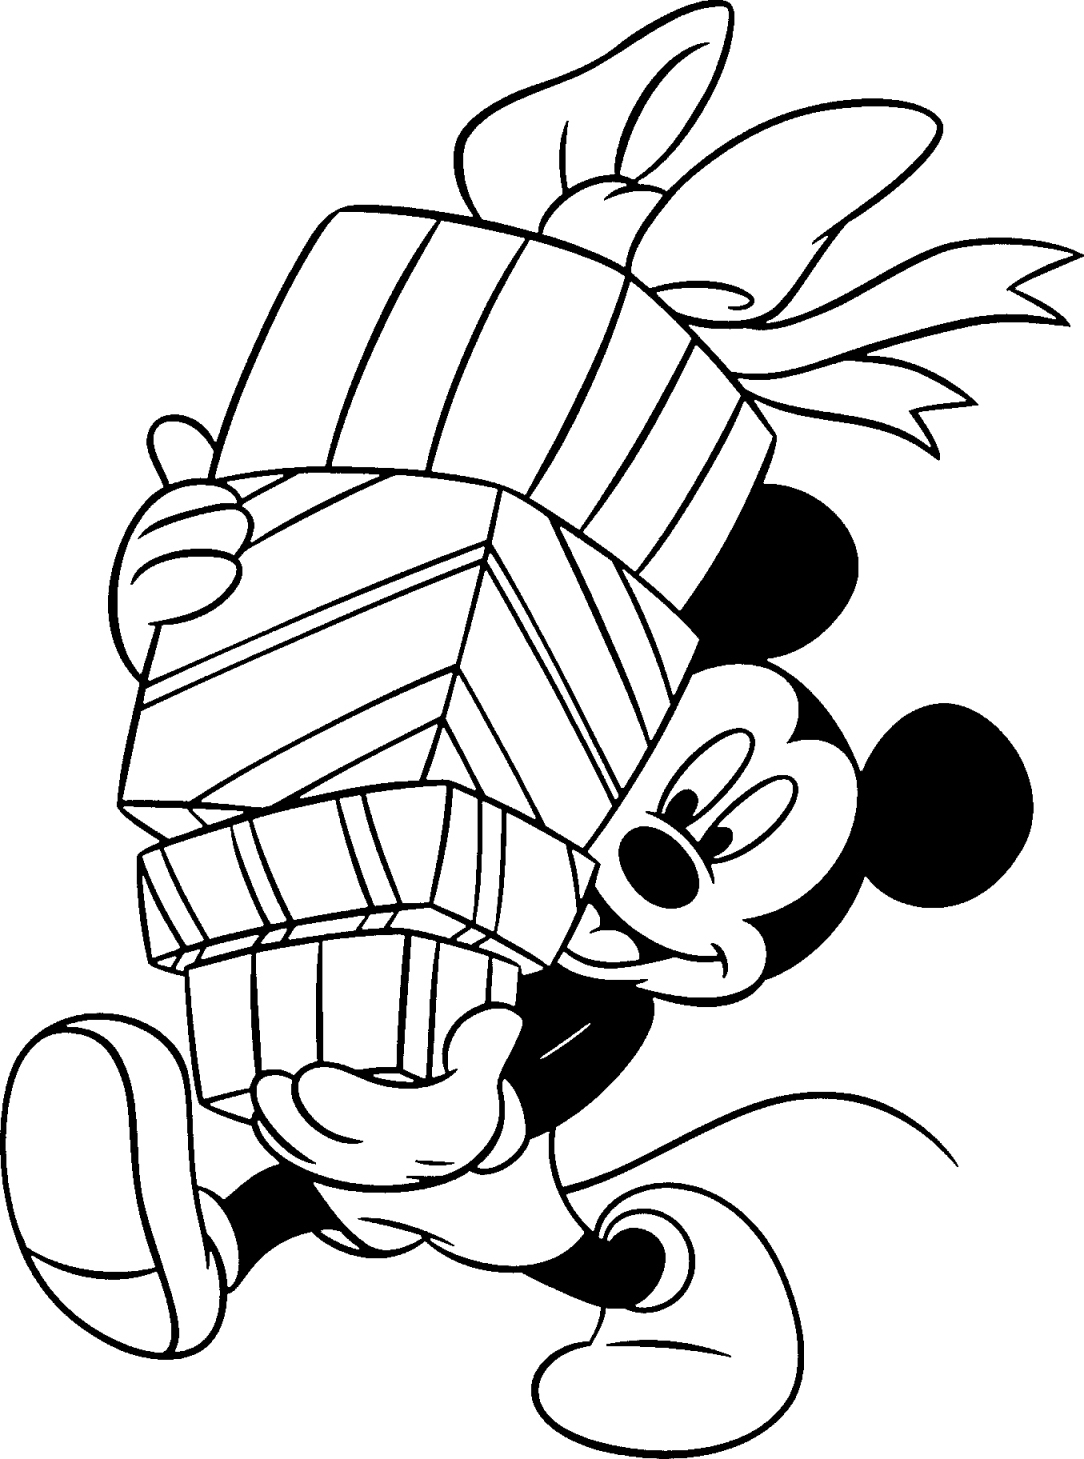 1084x1459 Disney Holiday Coloring Pages